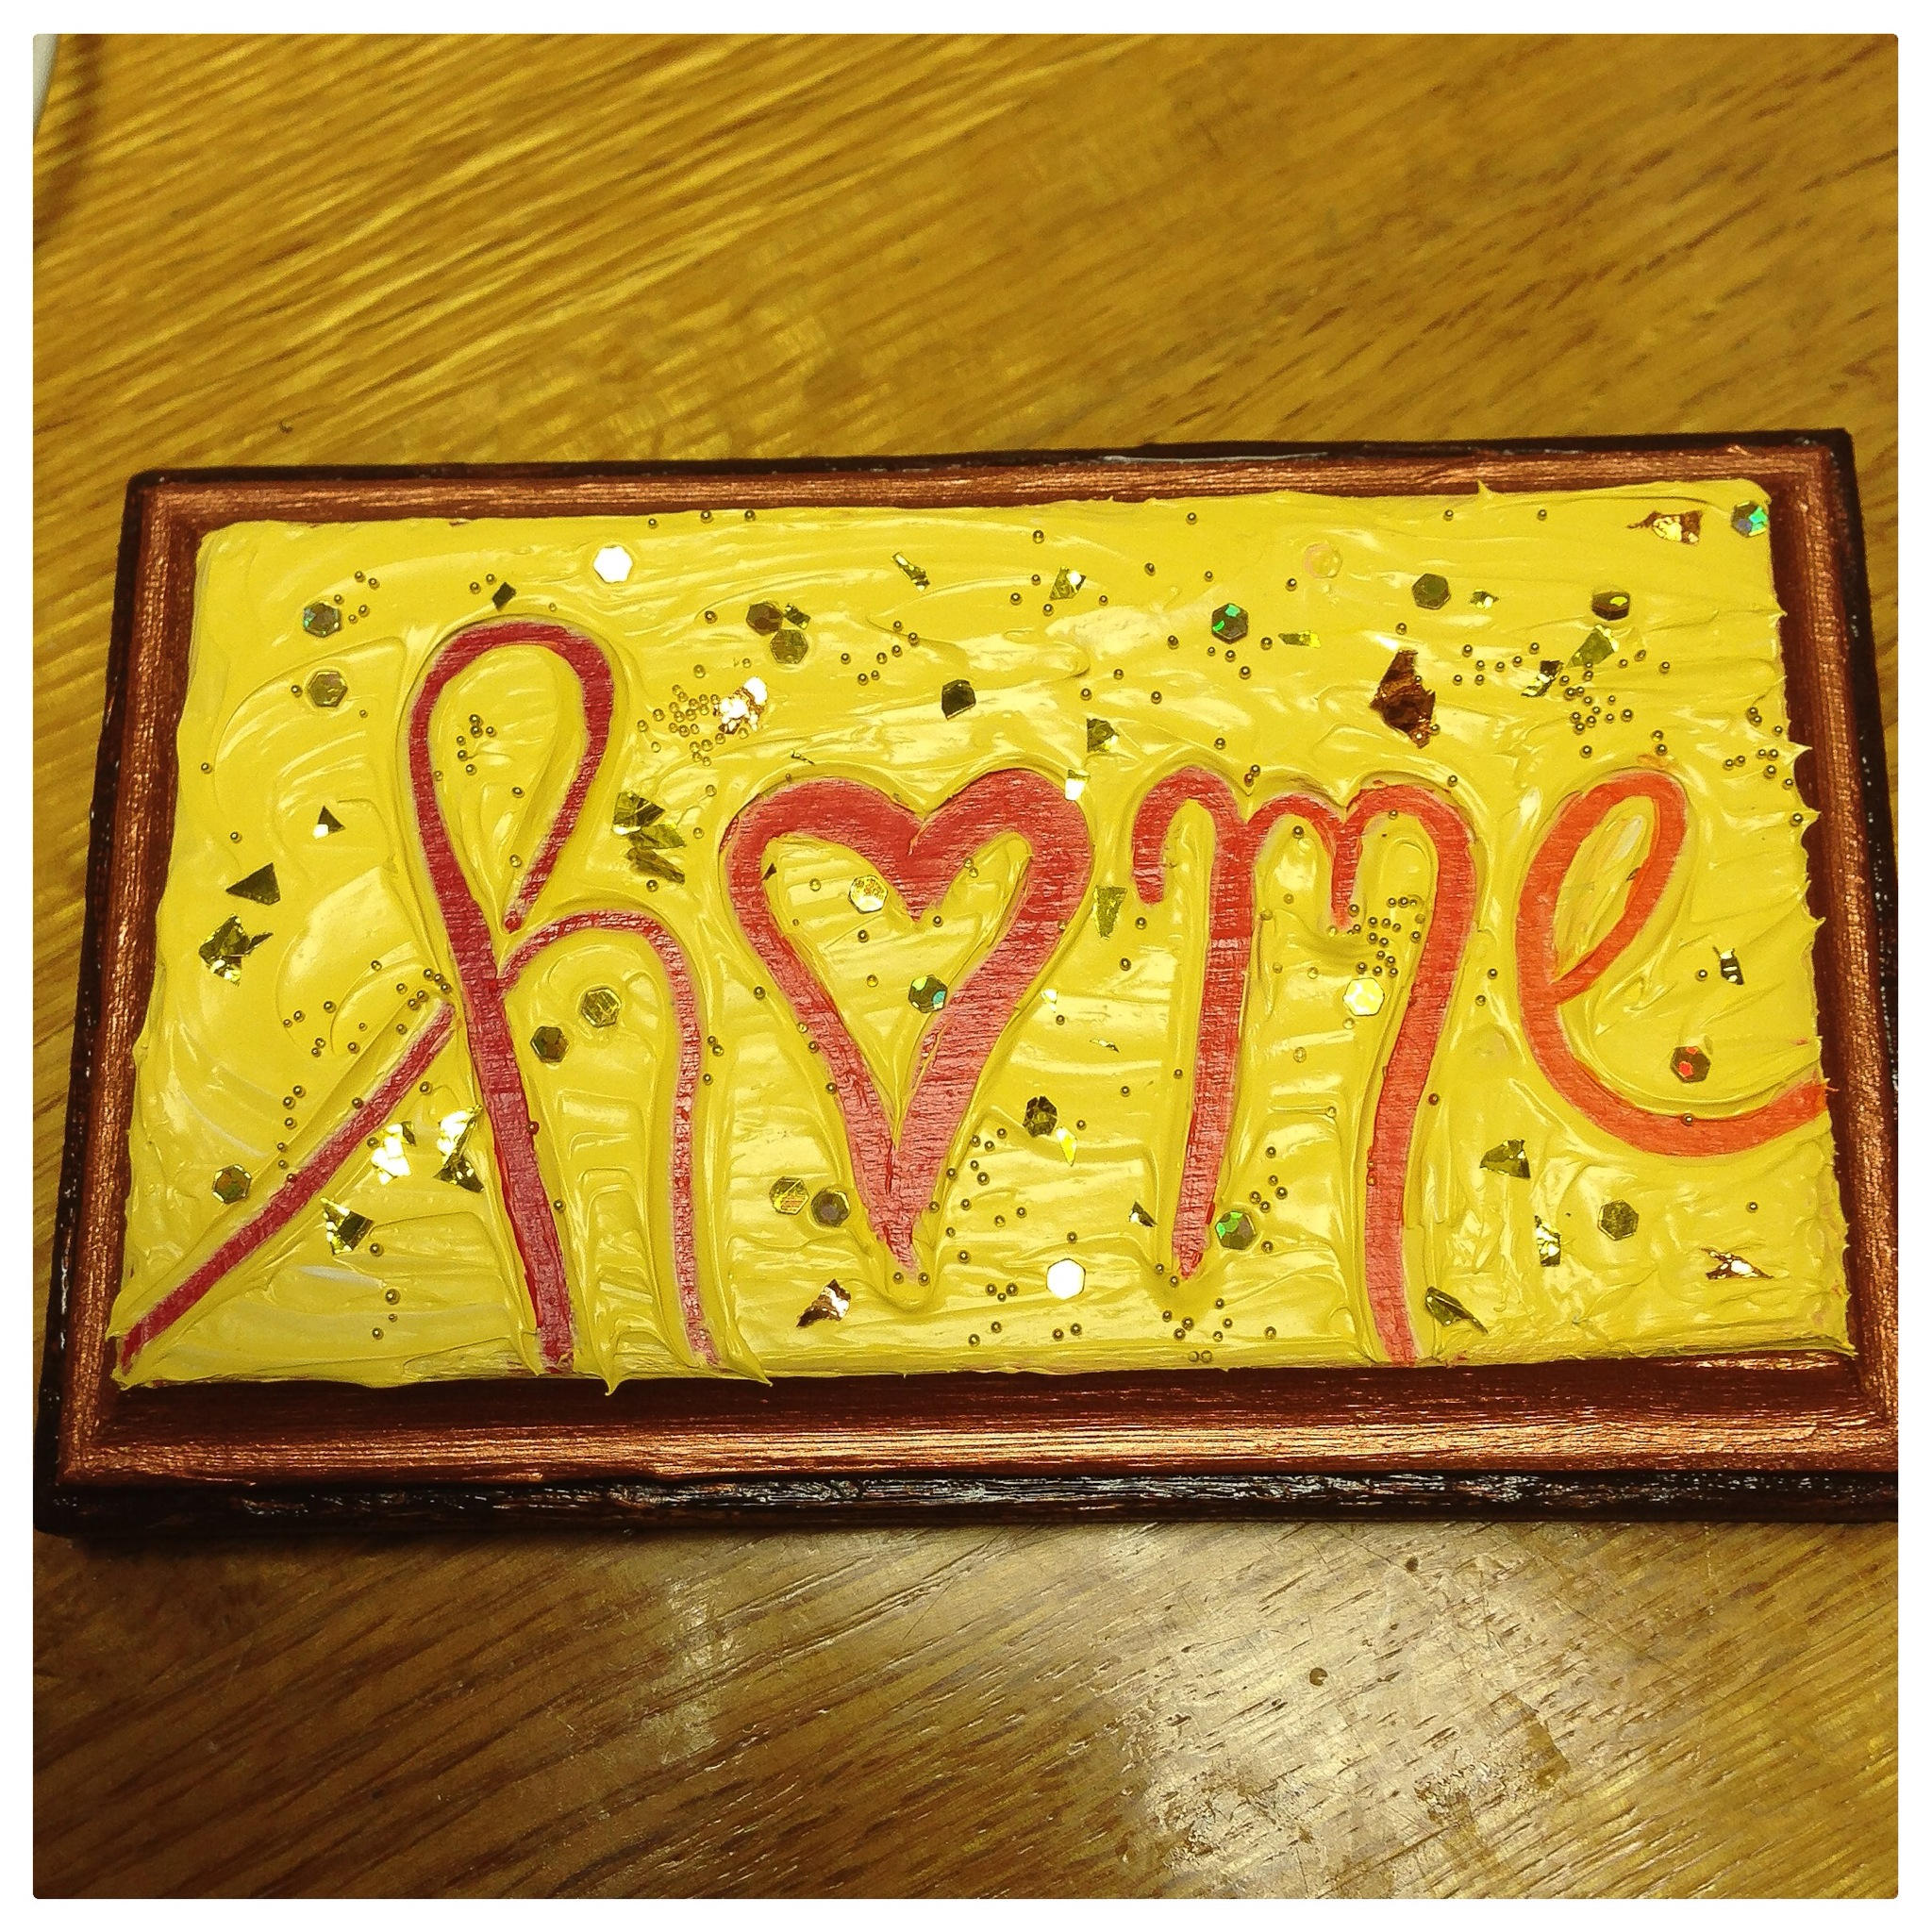 Painted plaque with the word home on it.